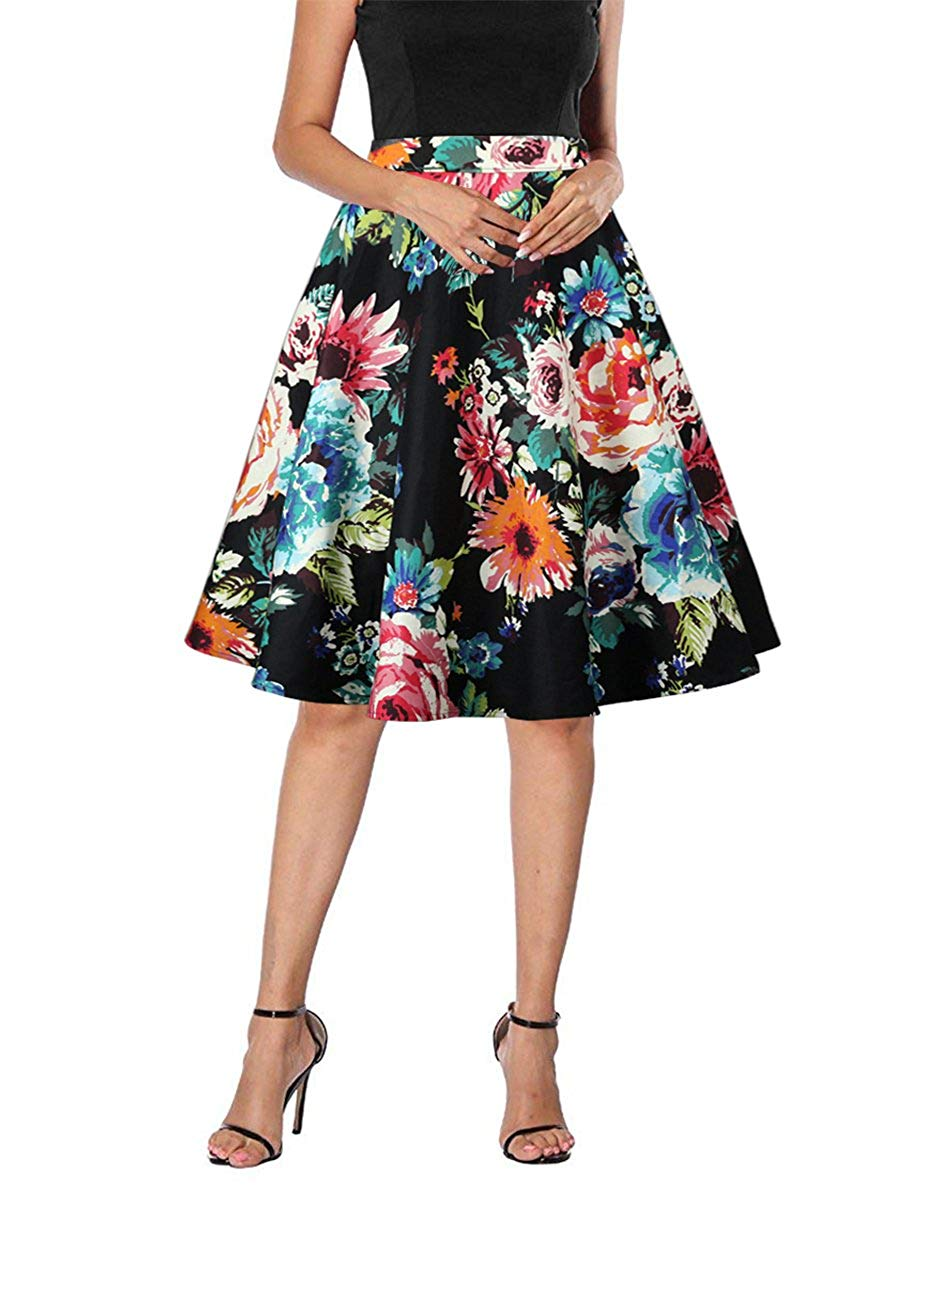 Yanmei Women's 50s Vintage Floral Skirt High Waisted A Line Casual Midi Skirts on Amazon